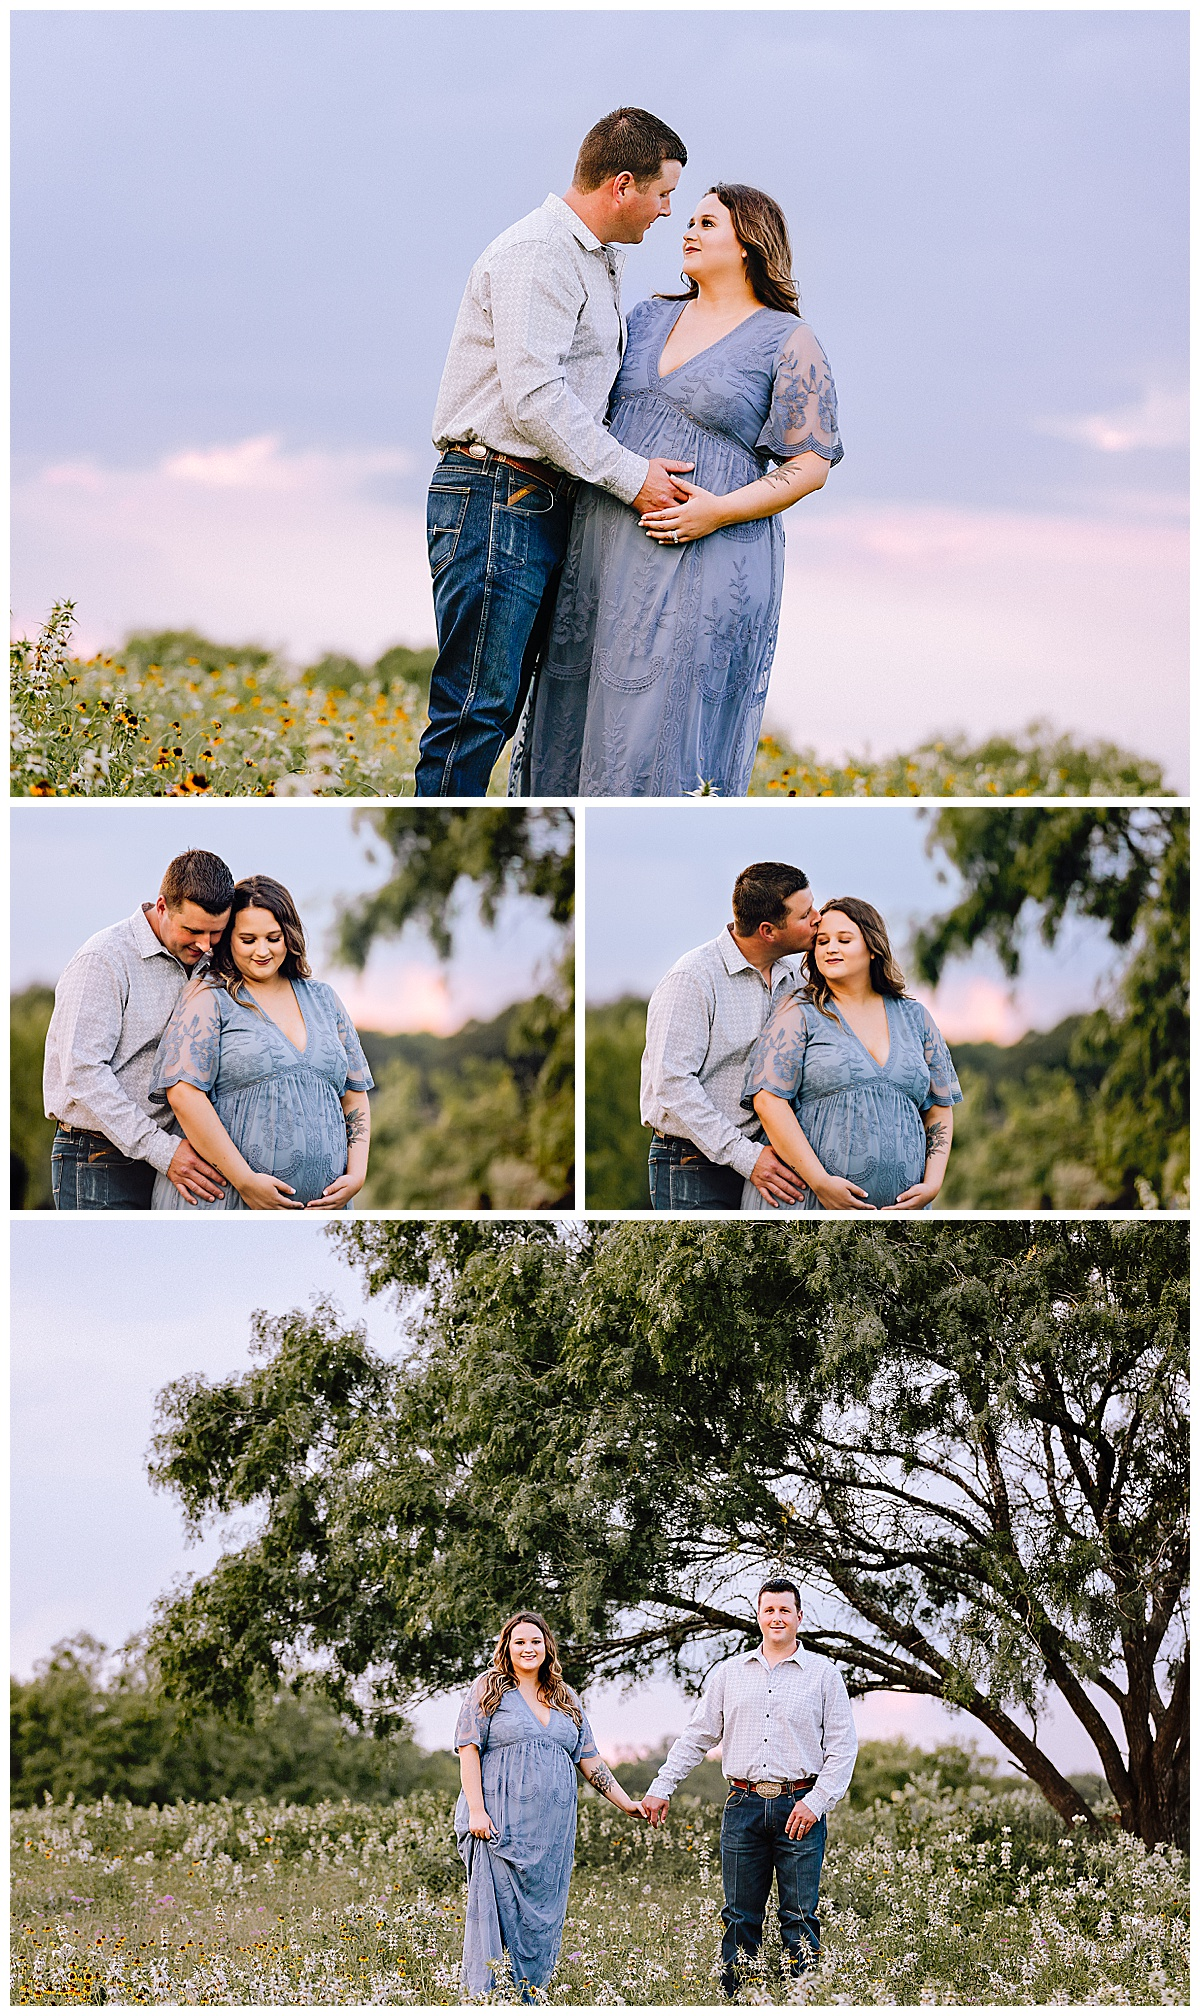 Rustic-Maternity-Session-Texas-Sunset-Carly-Barton-Photography_0070.jpg